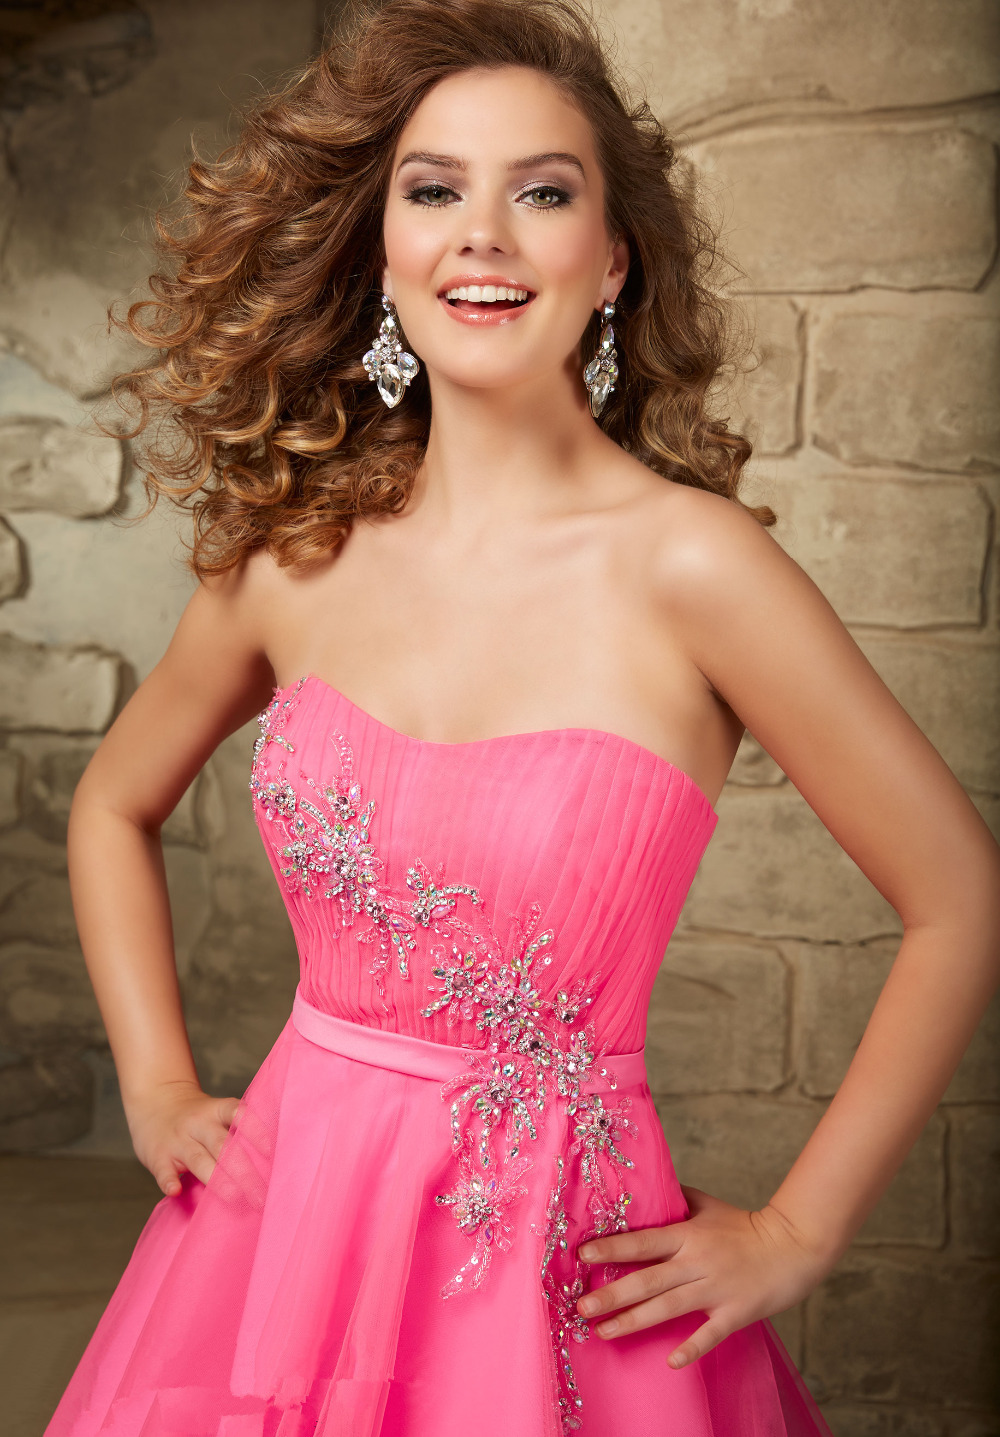 Hot Pink Short Homecoming Dresses For Prom 8th Grade Graduation ...